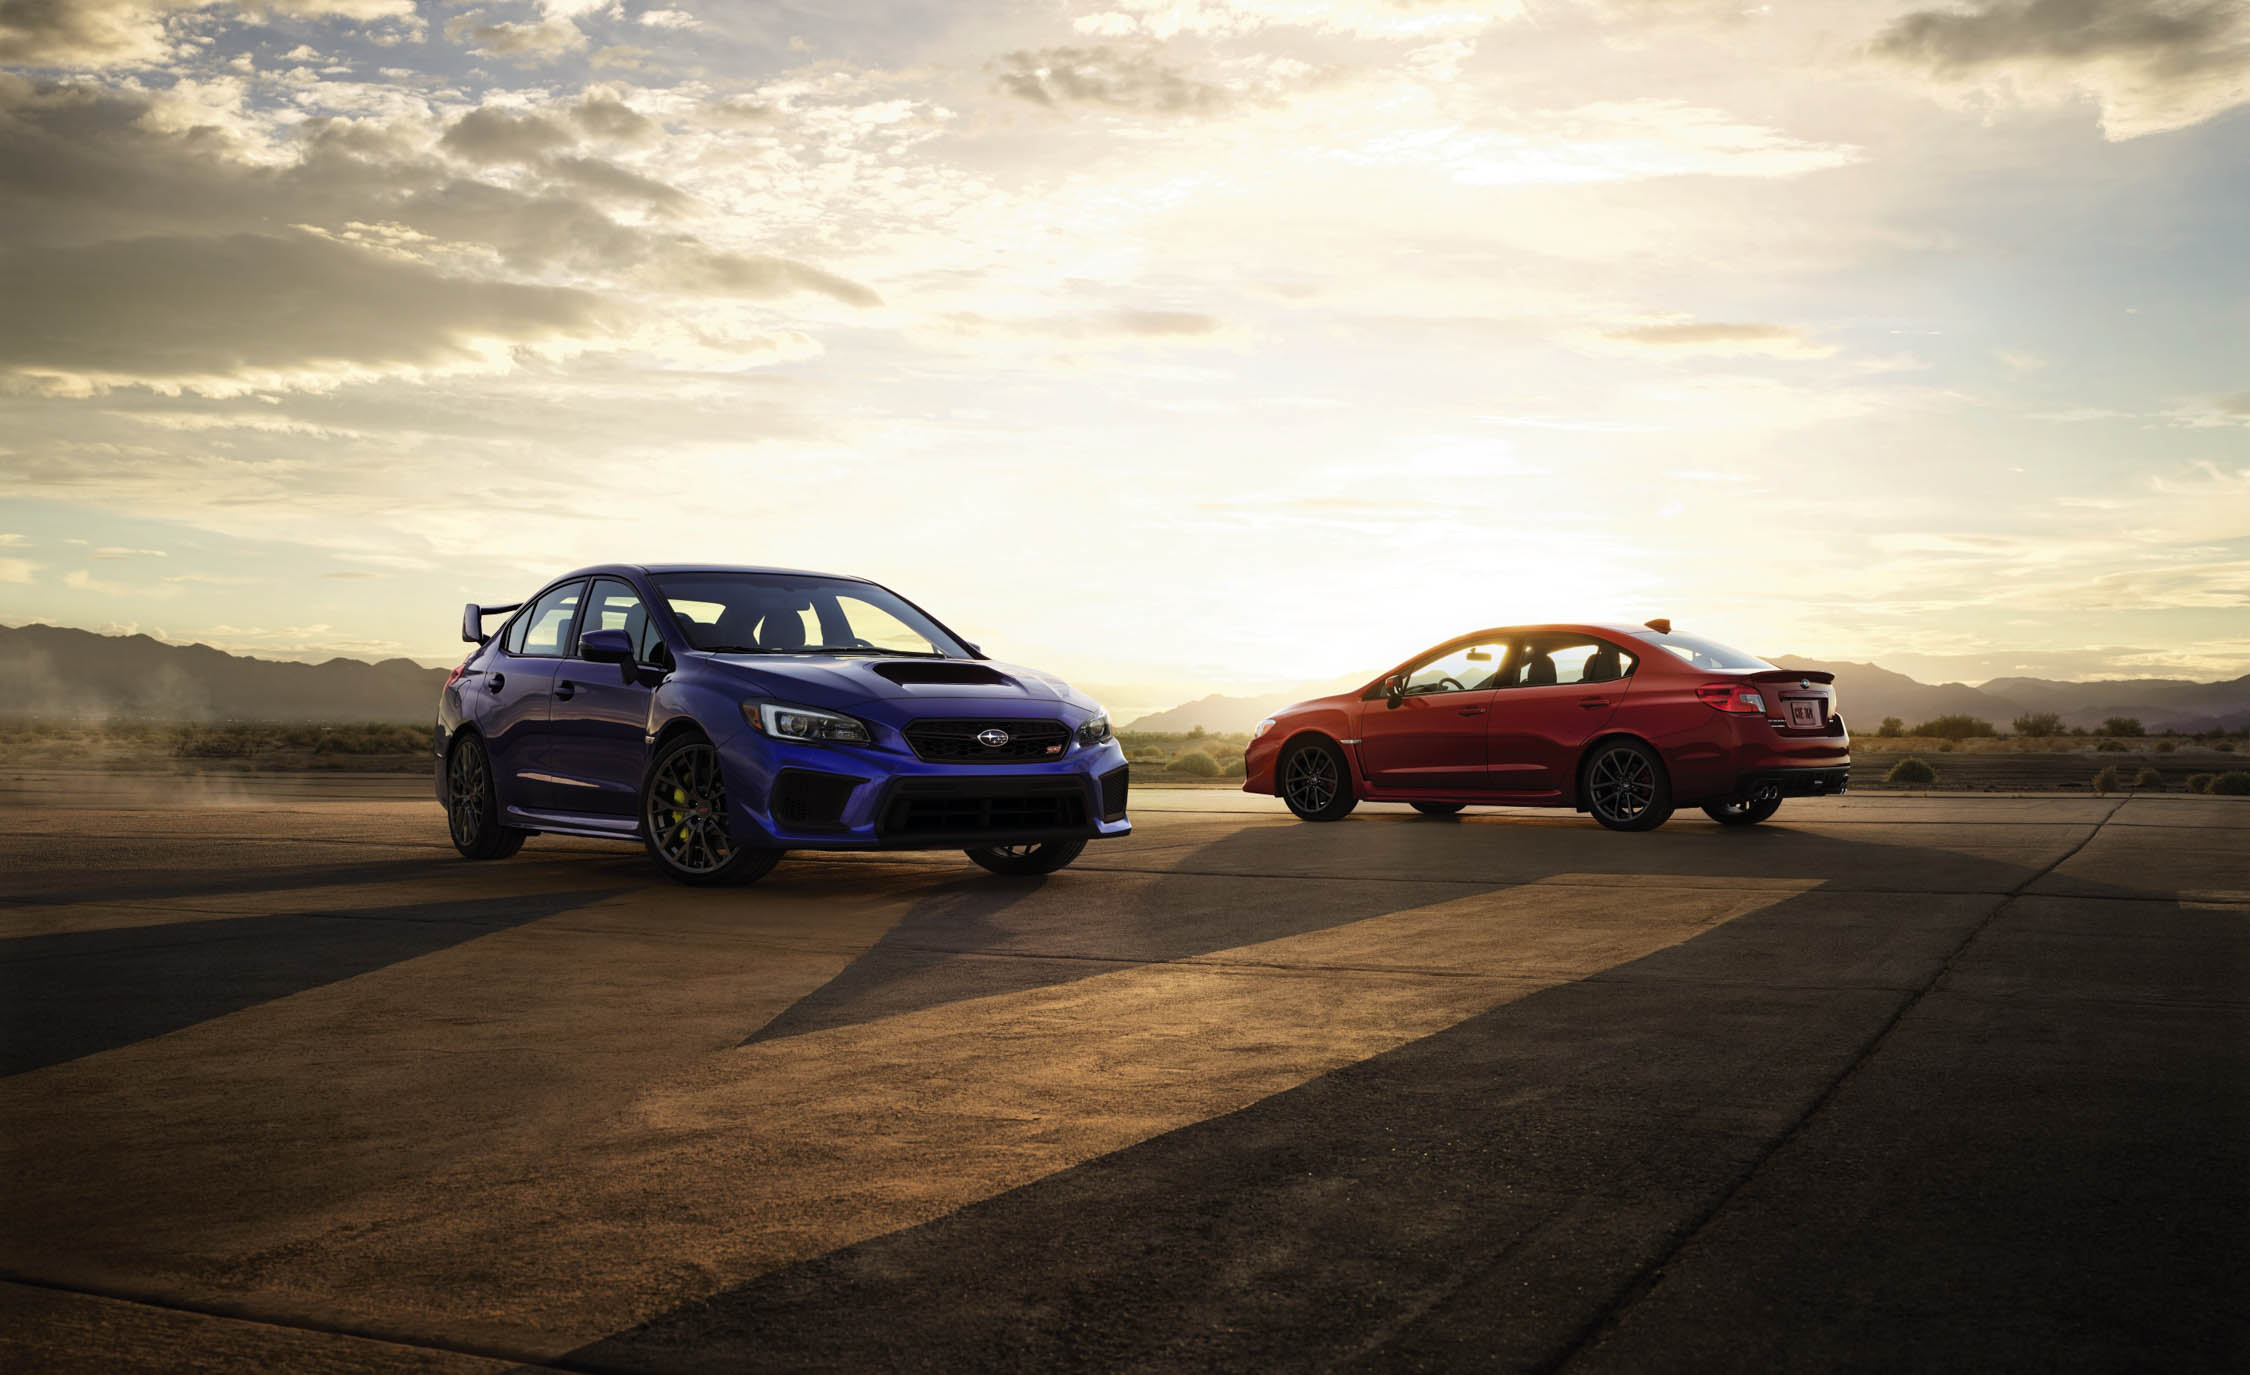 2018 Subaru Wrx And Wrx Sti (Photo 14 of 14)